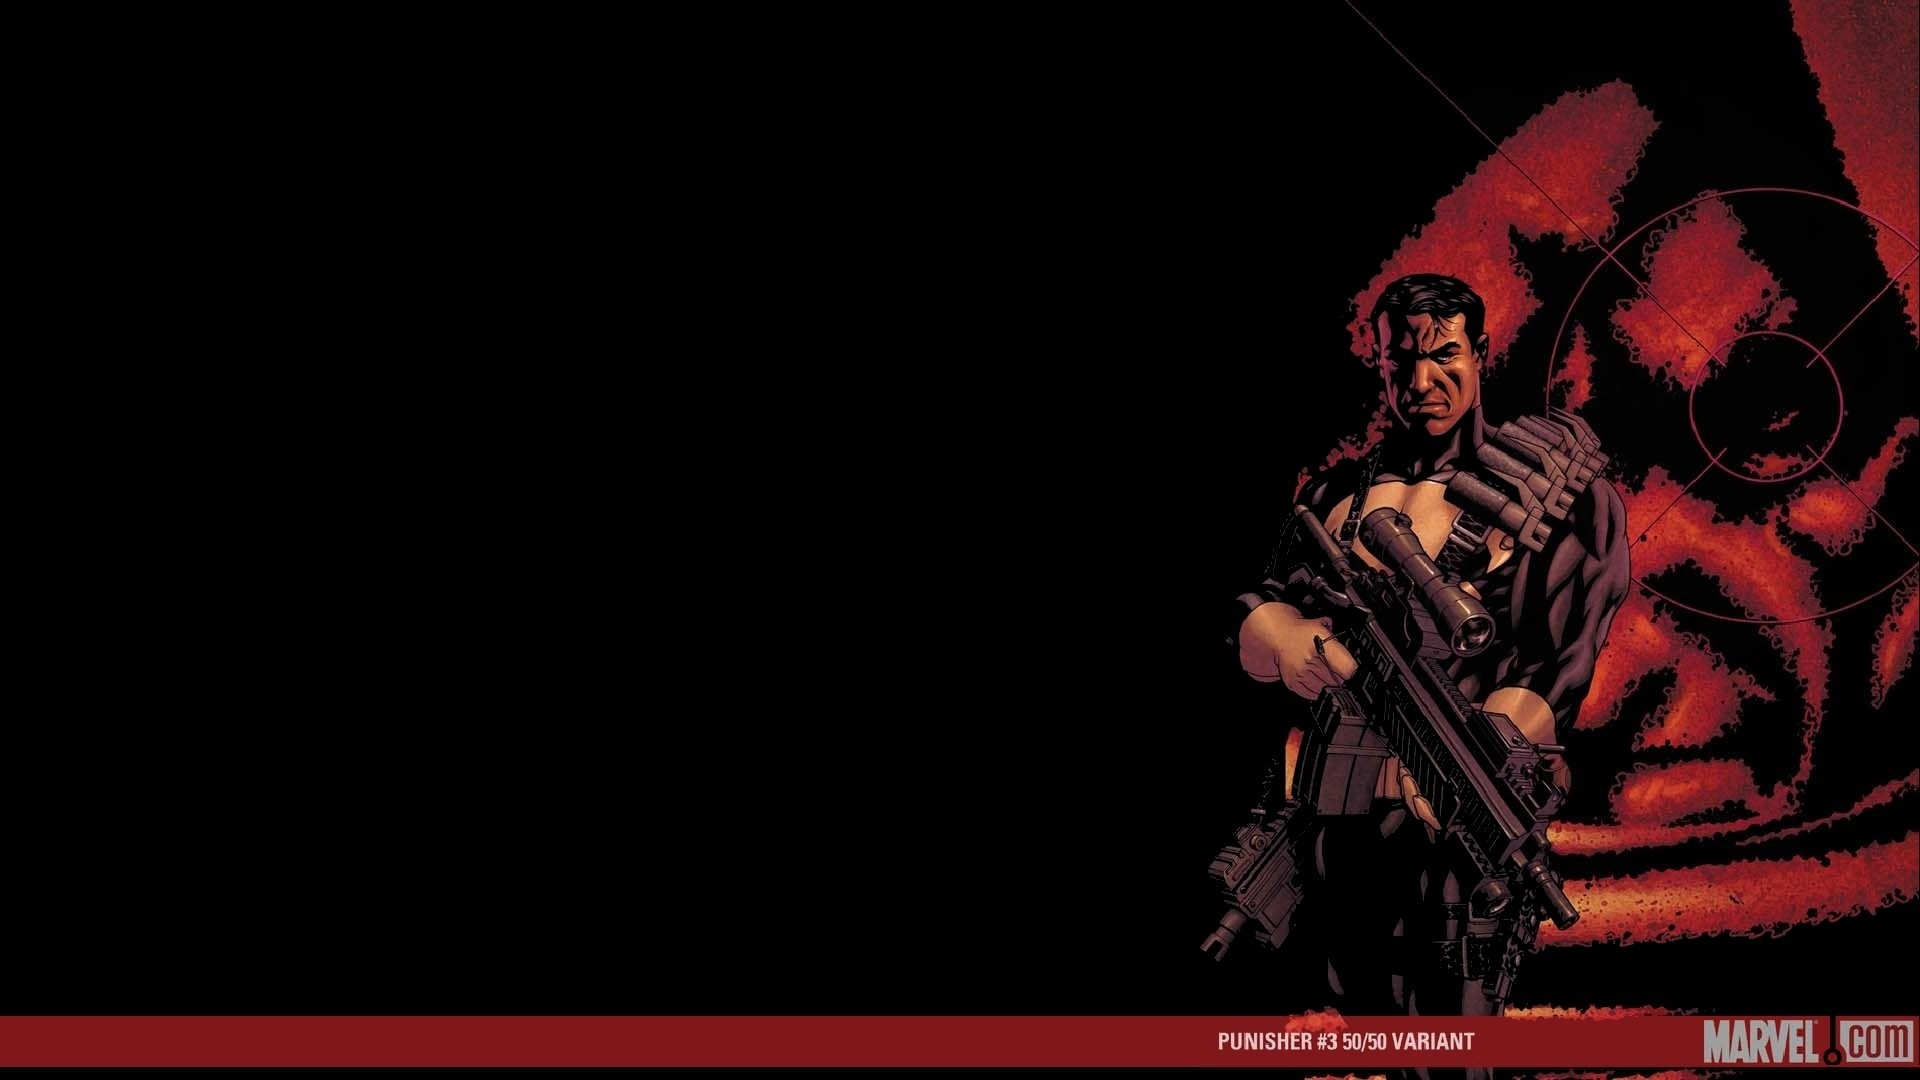 1920x1080 Comics - The Punisher Frank Castle Punisher Wallpaper